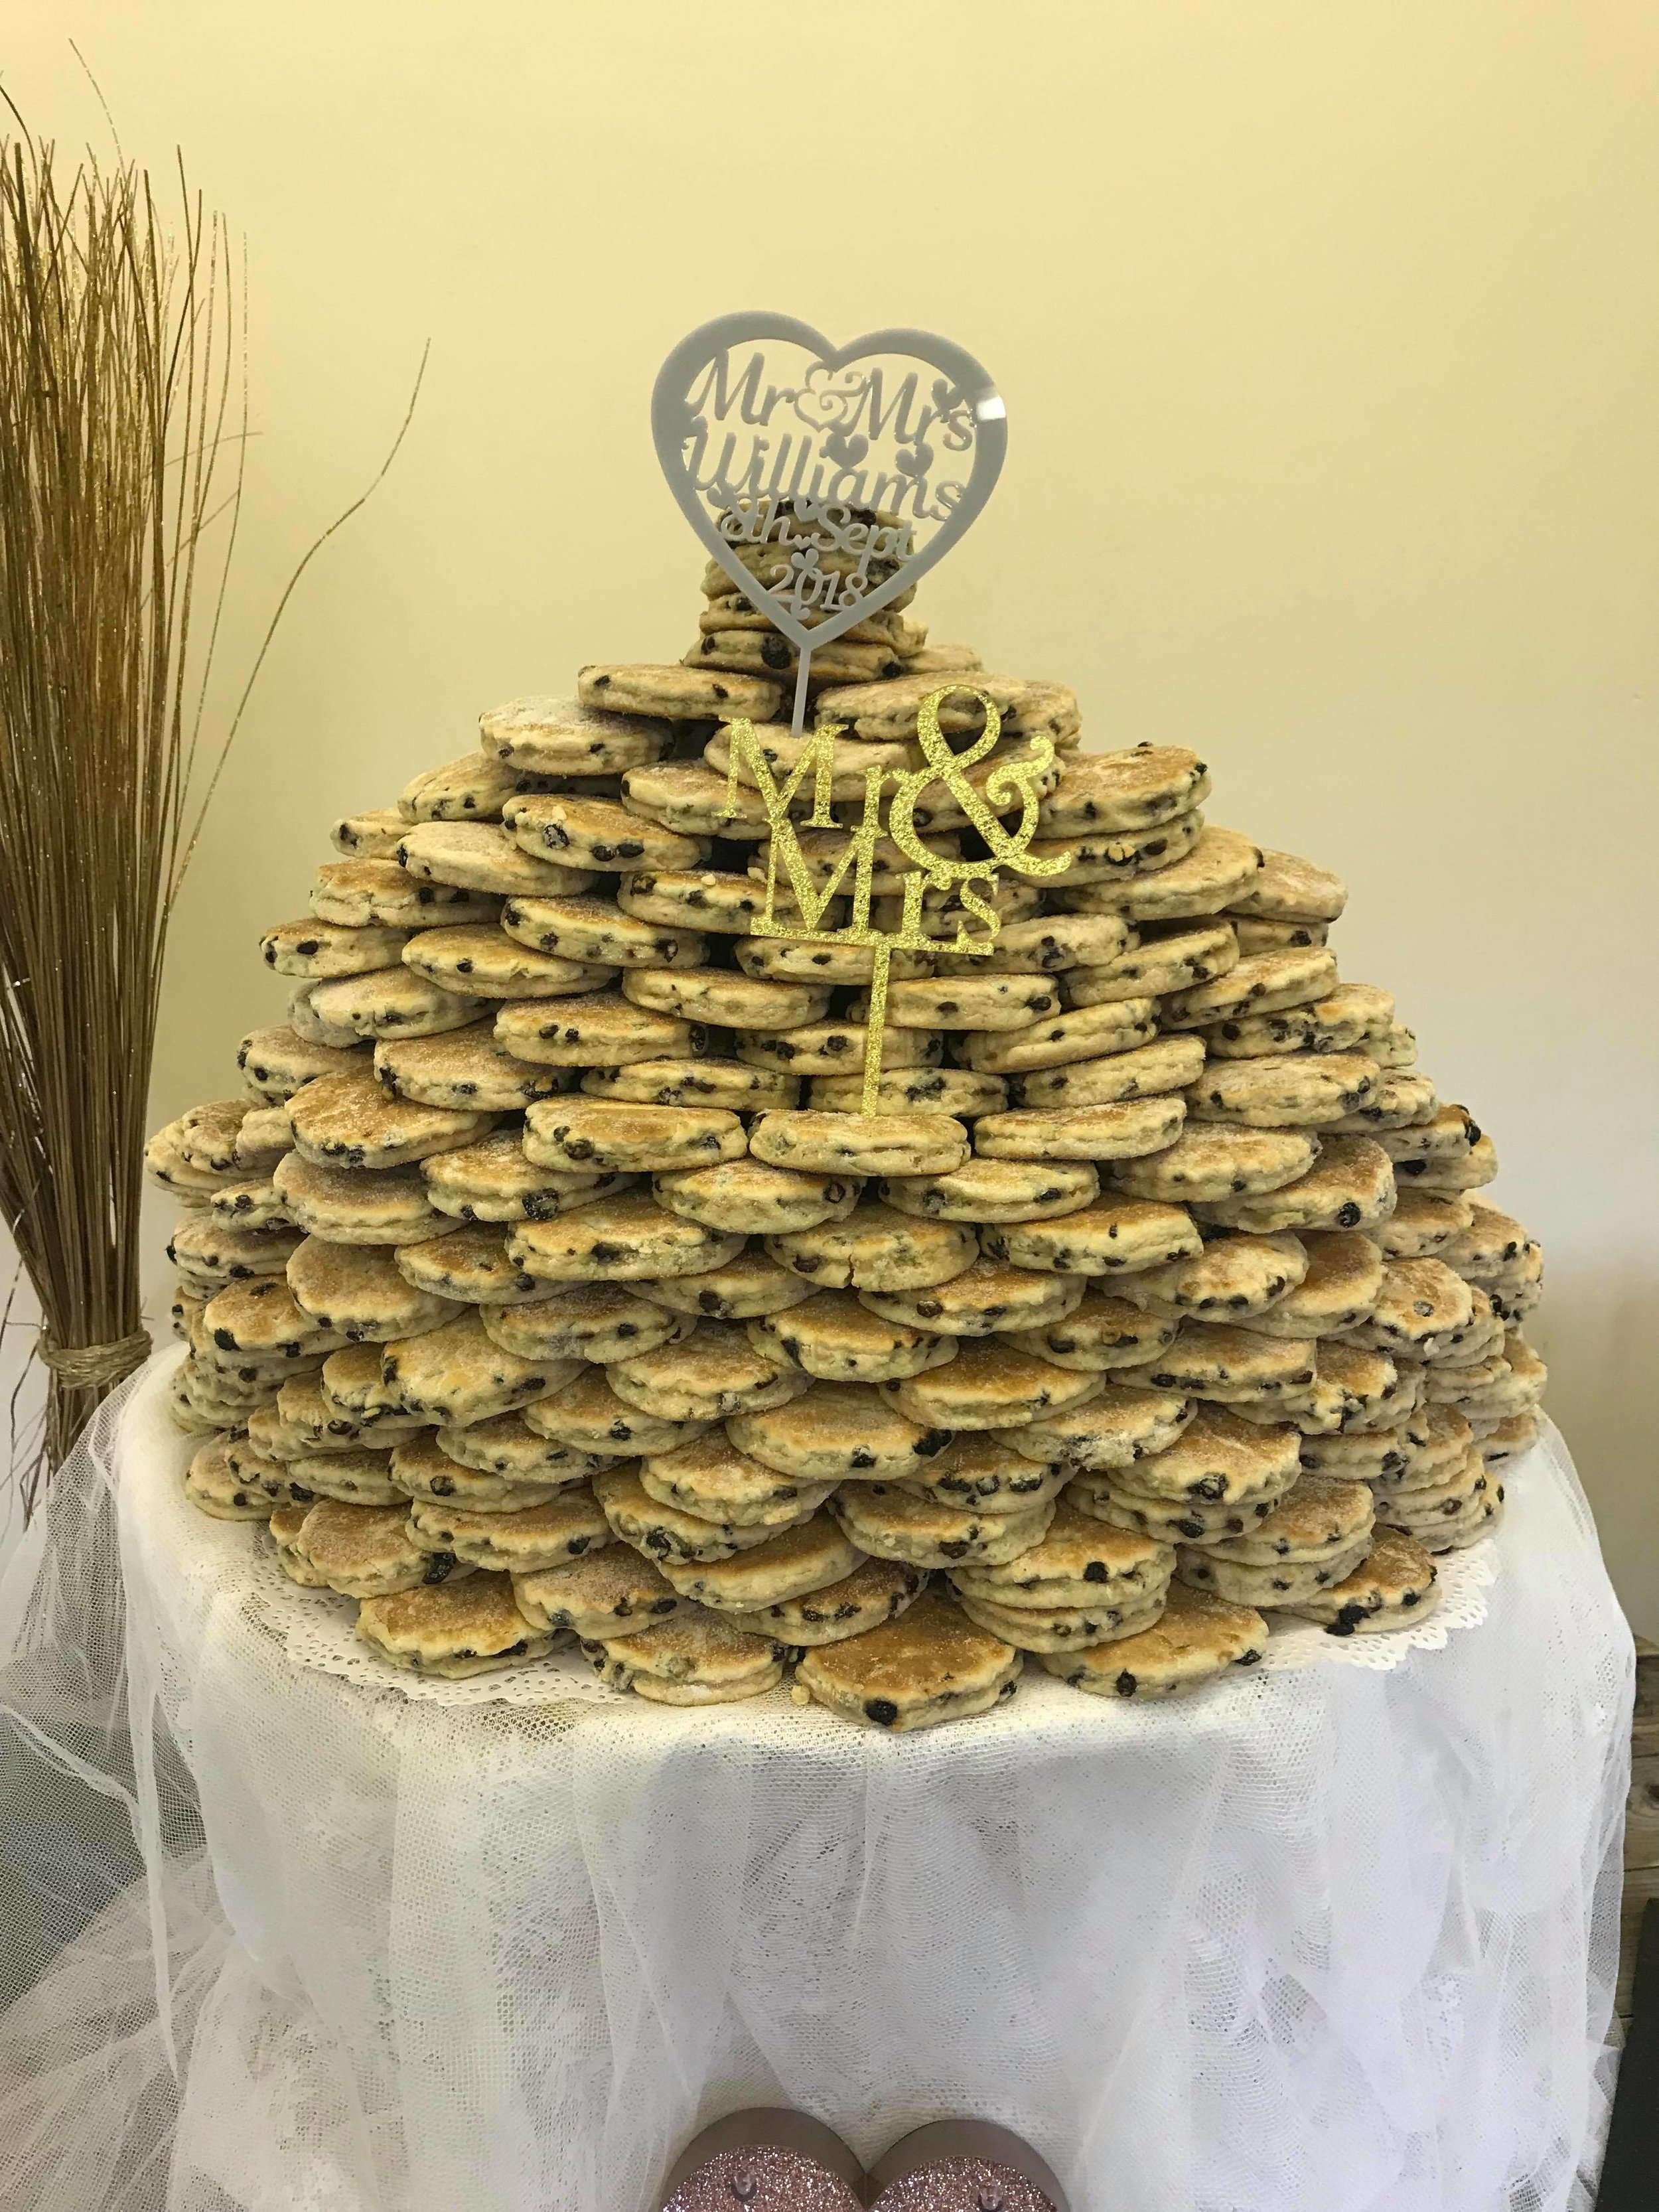 I just want to say a big thank you to all. This is what a 300 welsh cake wedding cake looks like and everyone loved it!